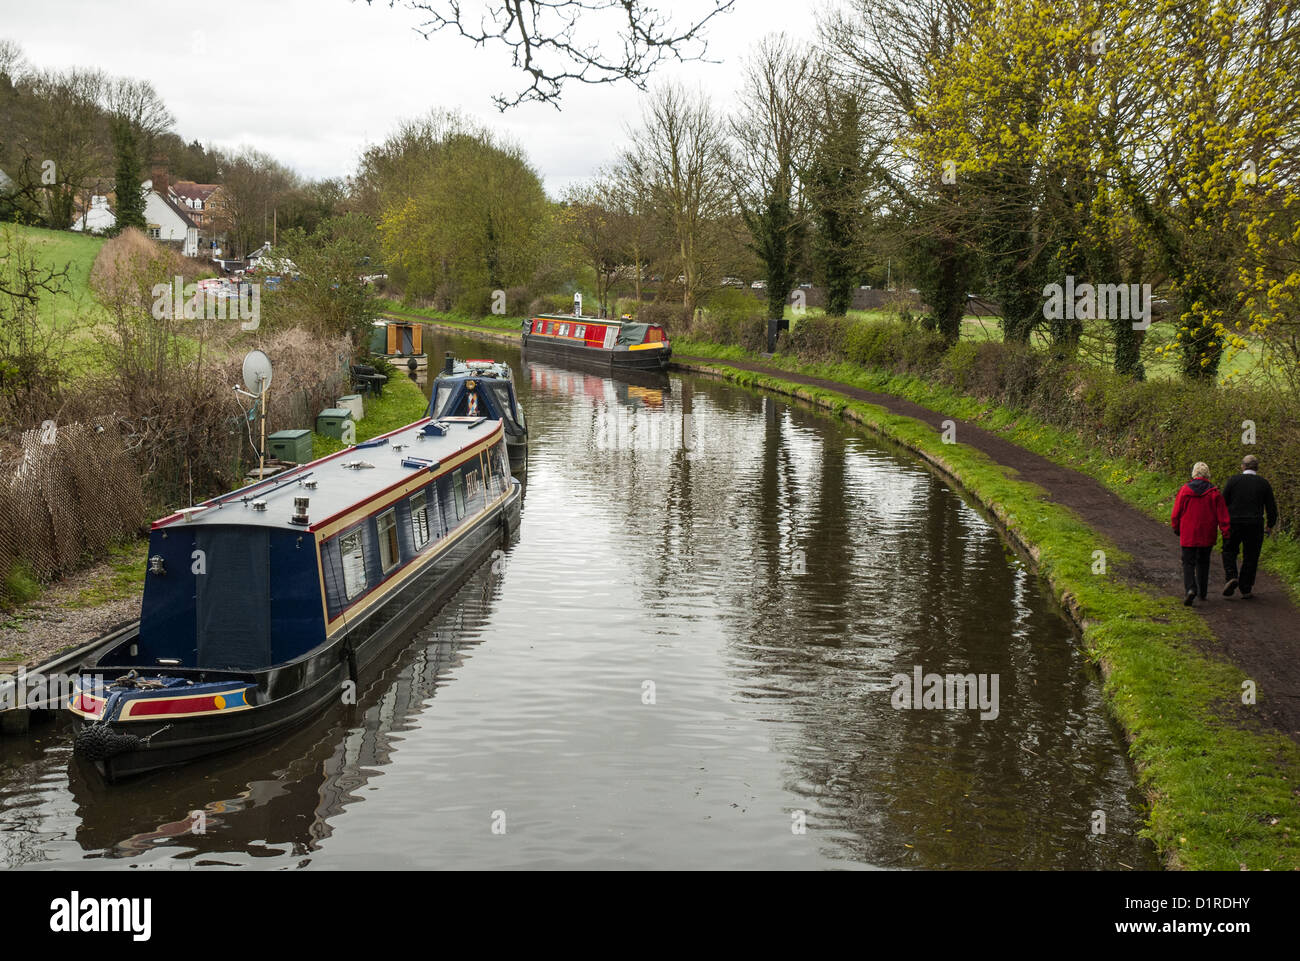 Following the Staffordshire & Worcestershire Canal towpath towards Stewponey Locks, Stourton, in the Black Country - Stock Image